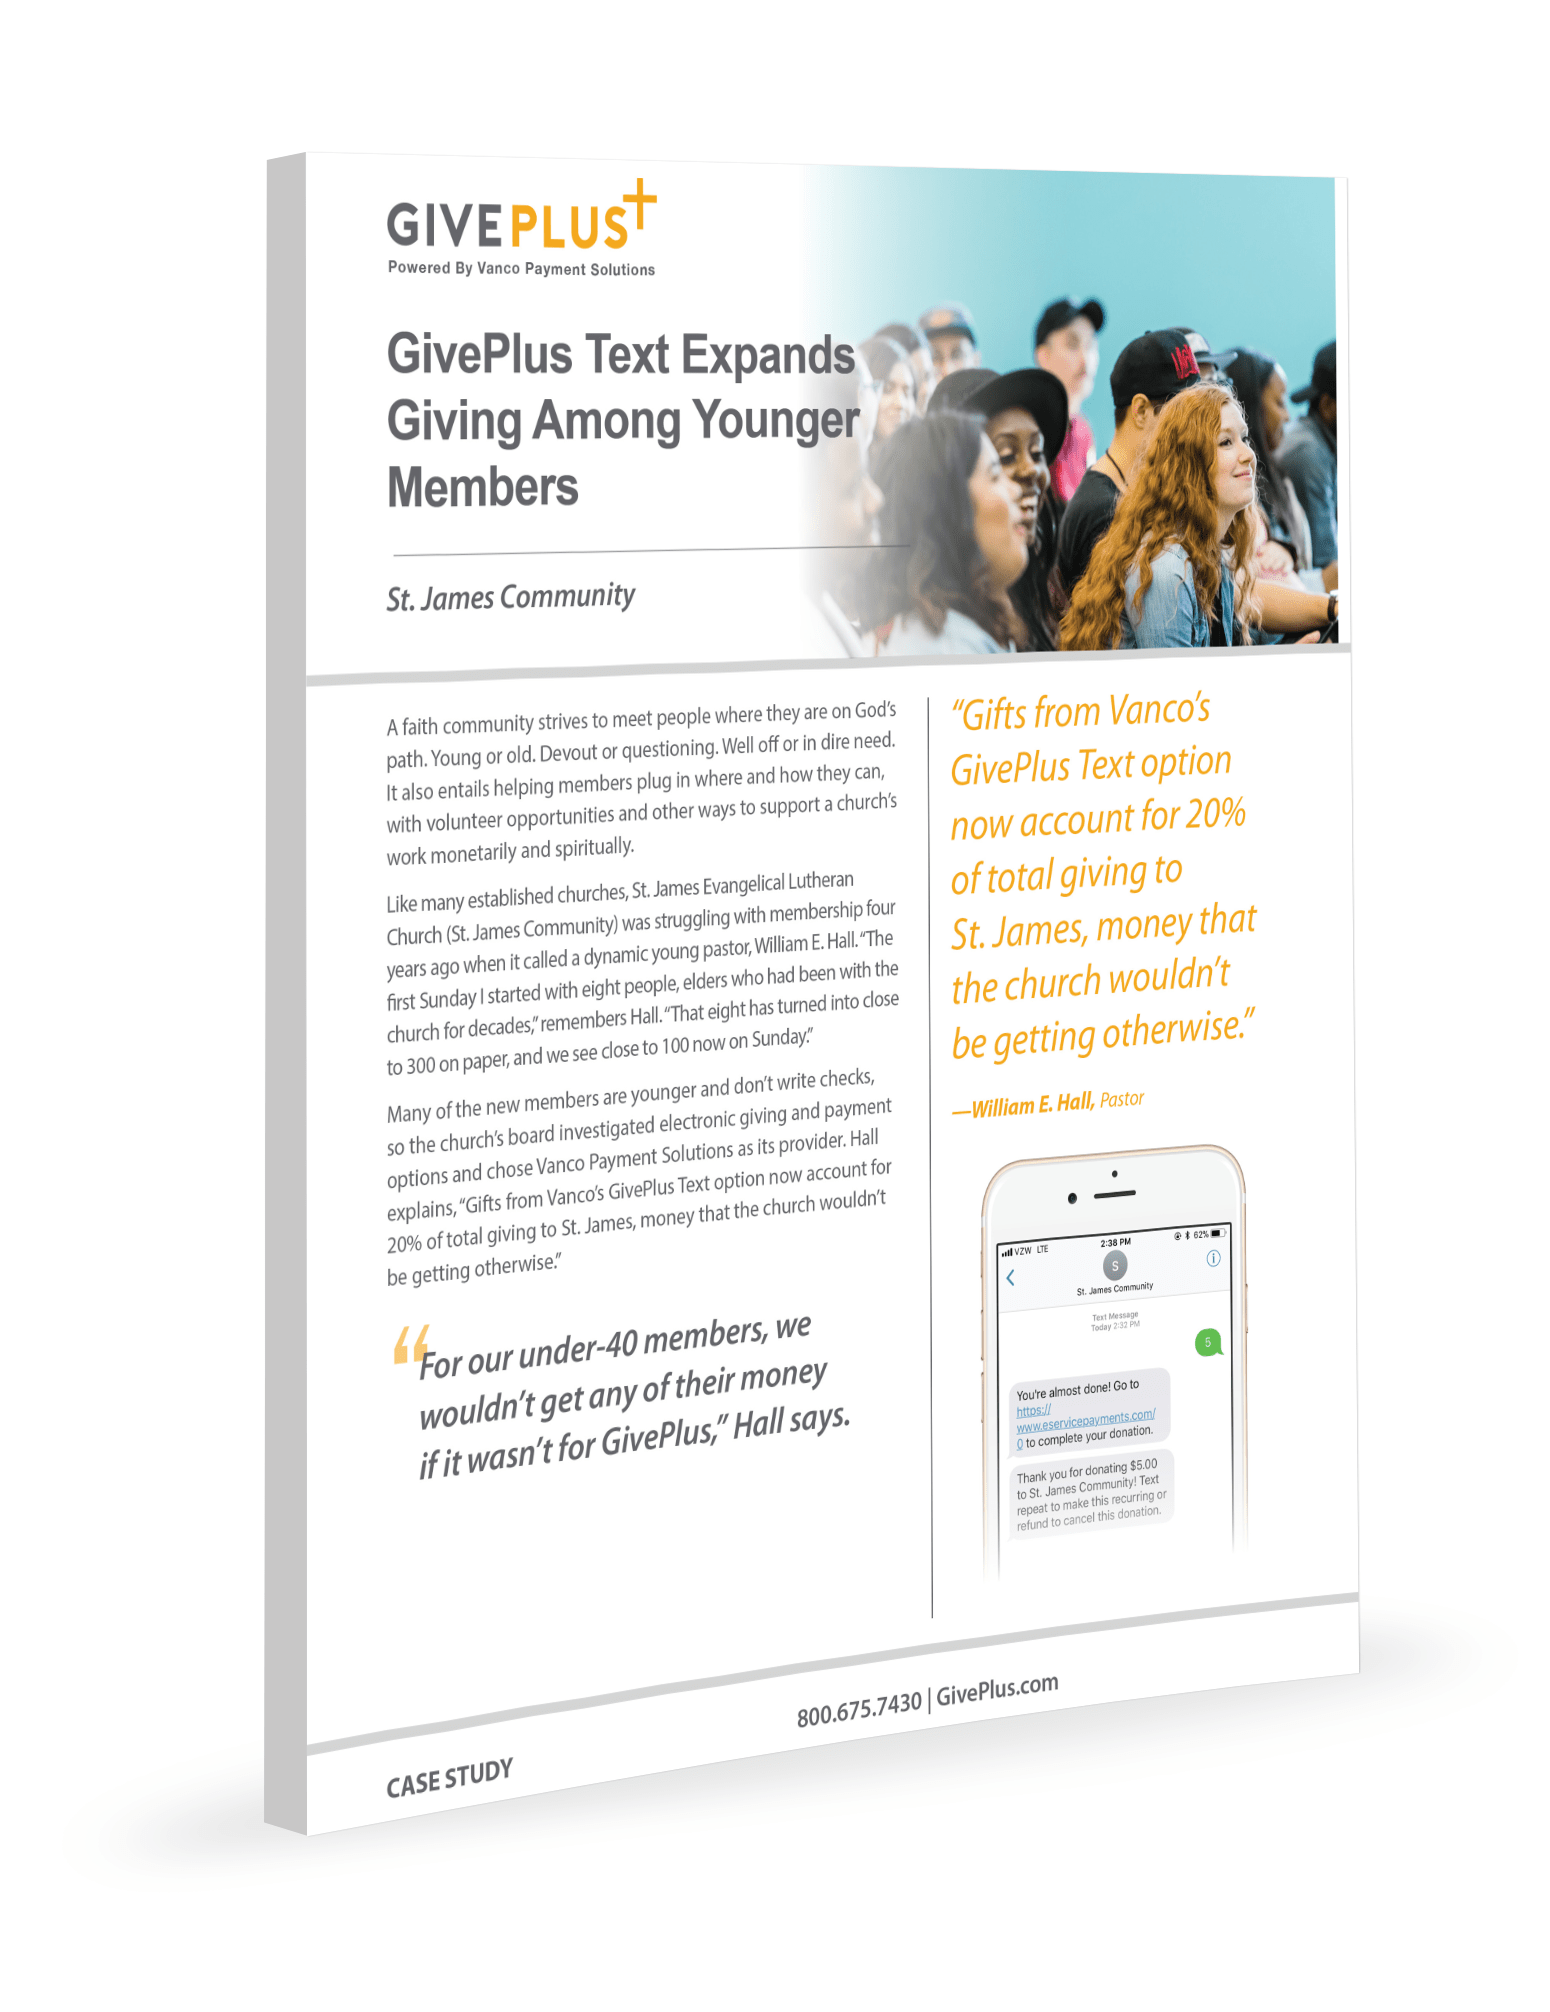 GivePlus Text Expands Giving Among Younger Members